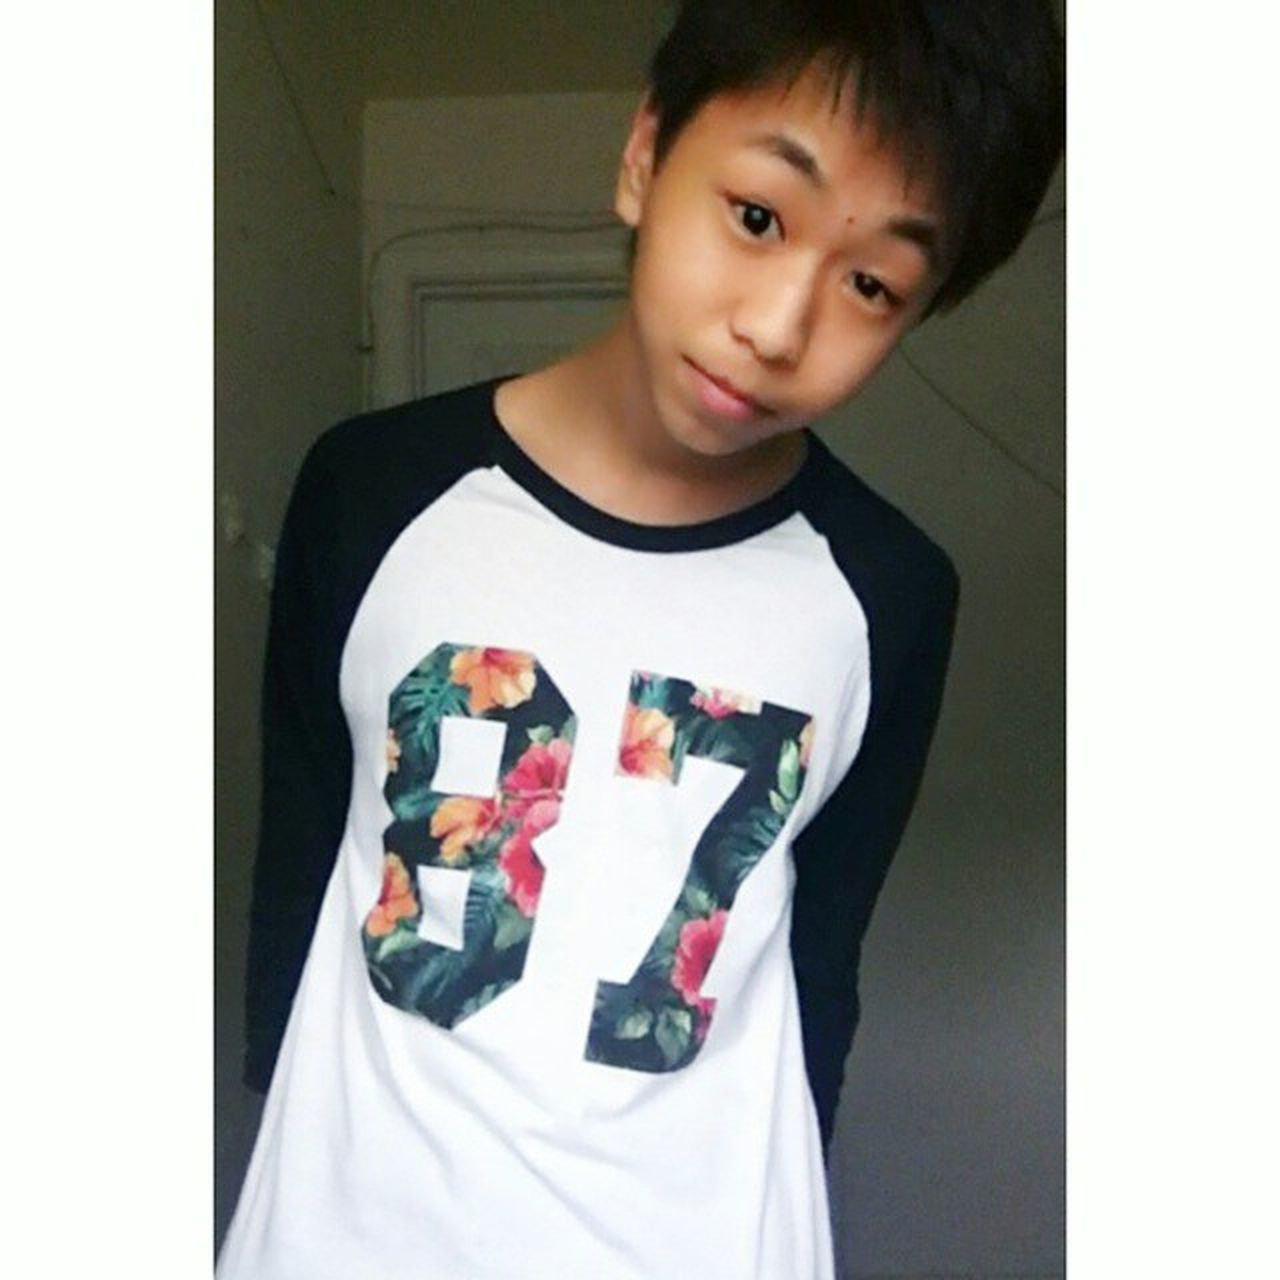 It's a good day to be alive Turtle_troy Asian  Asianguy Asianhair Asianlife Asiancutie Asianstyle Hmong Hmoob KAWAII Blah